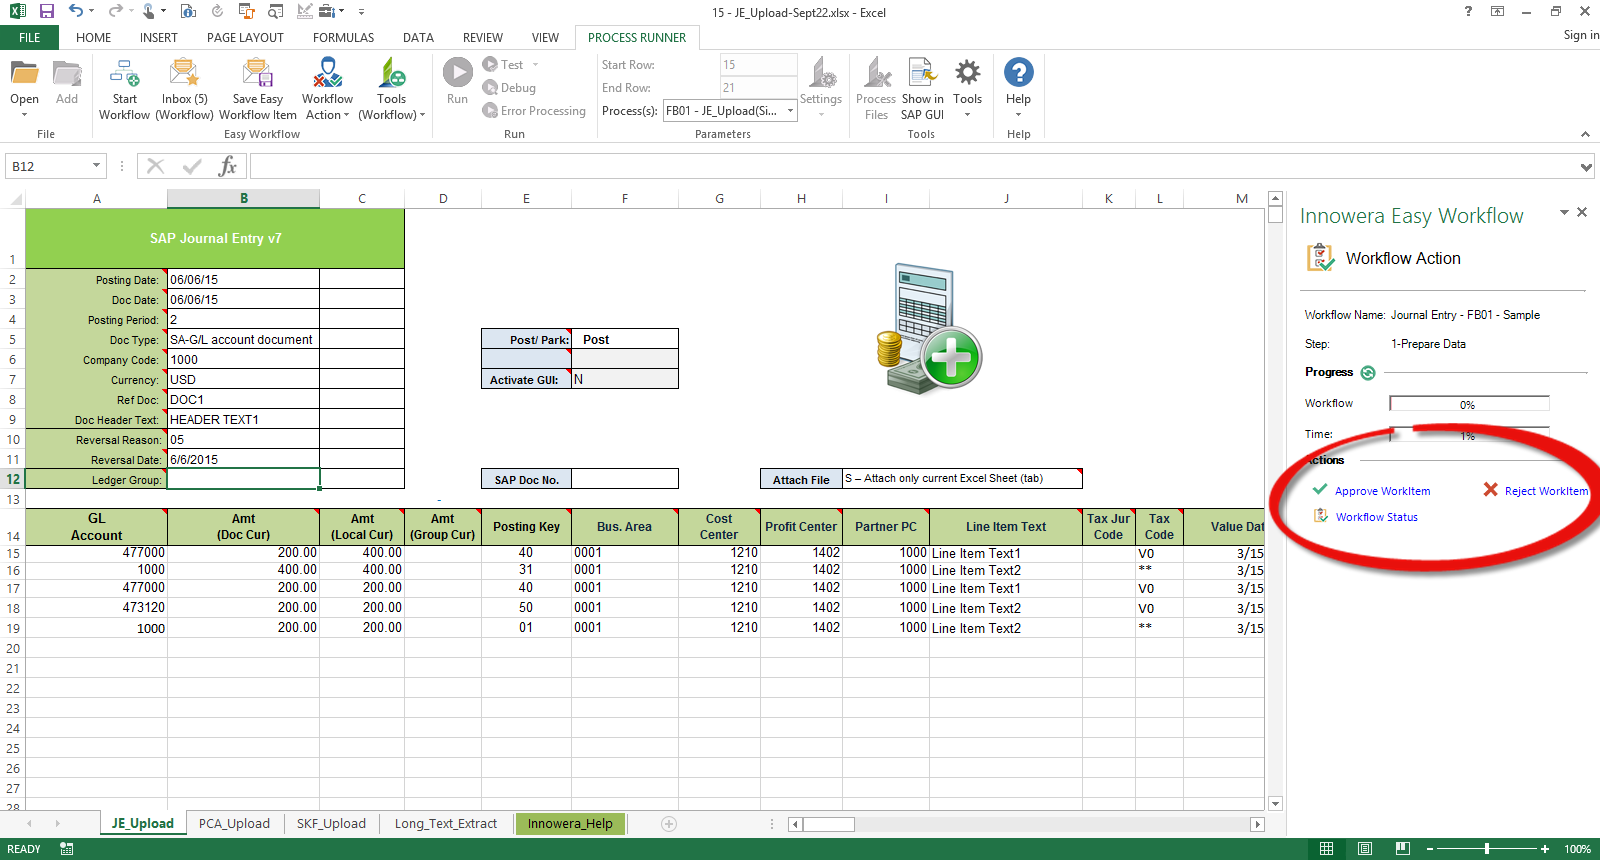 Template For Excel Workflow Template In Excel Workflow Template For Personal Use